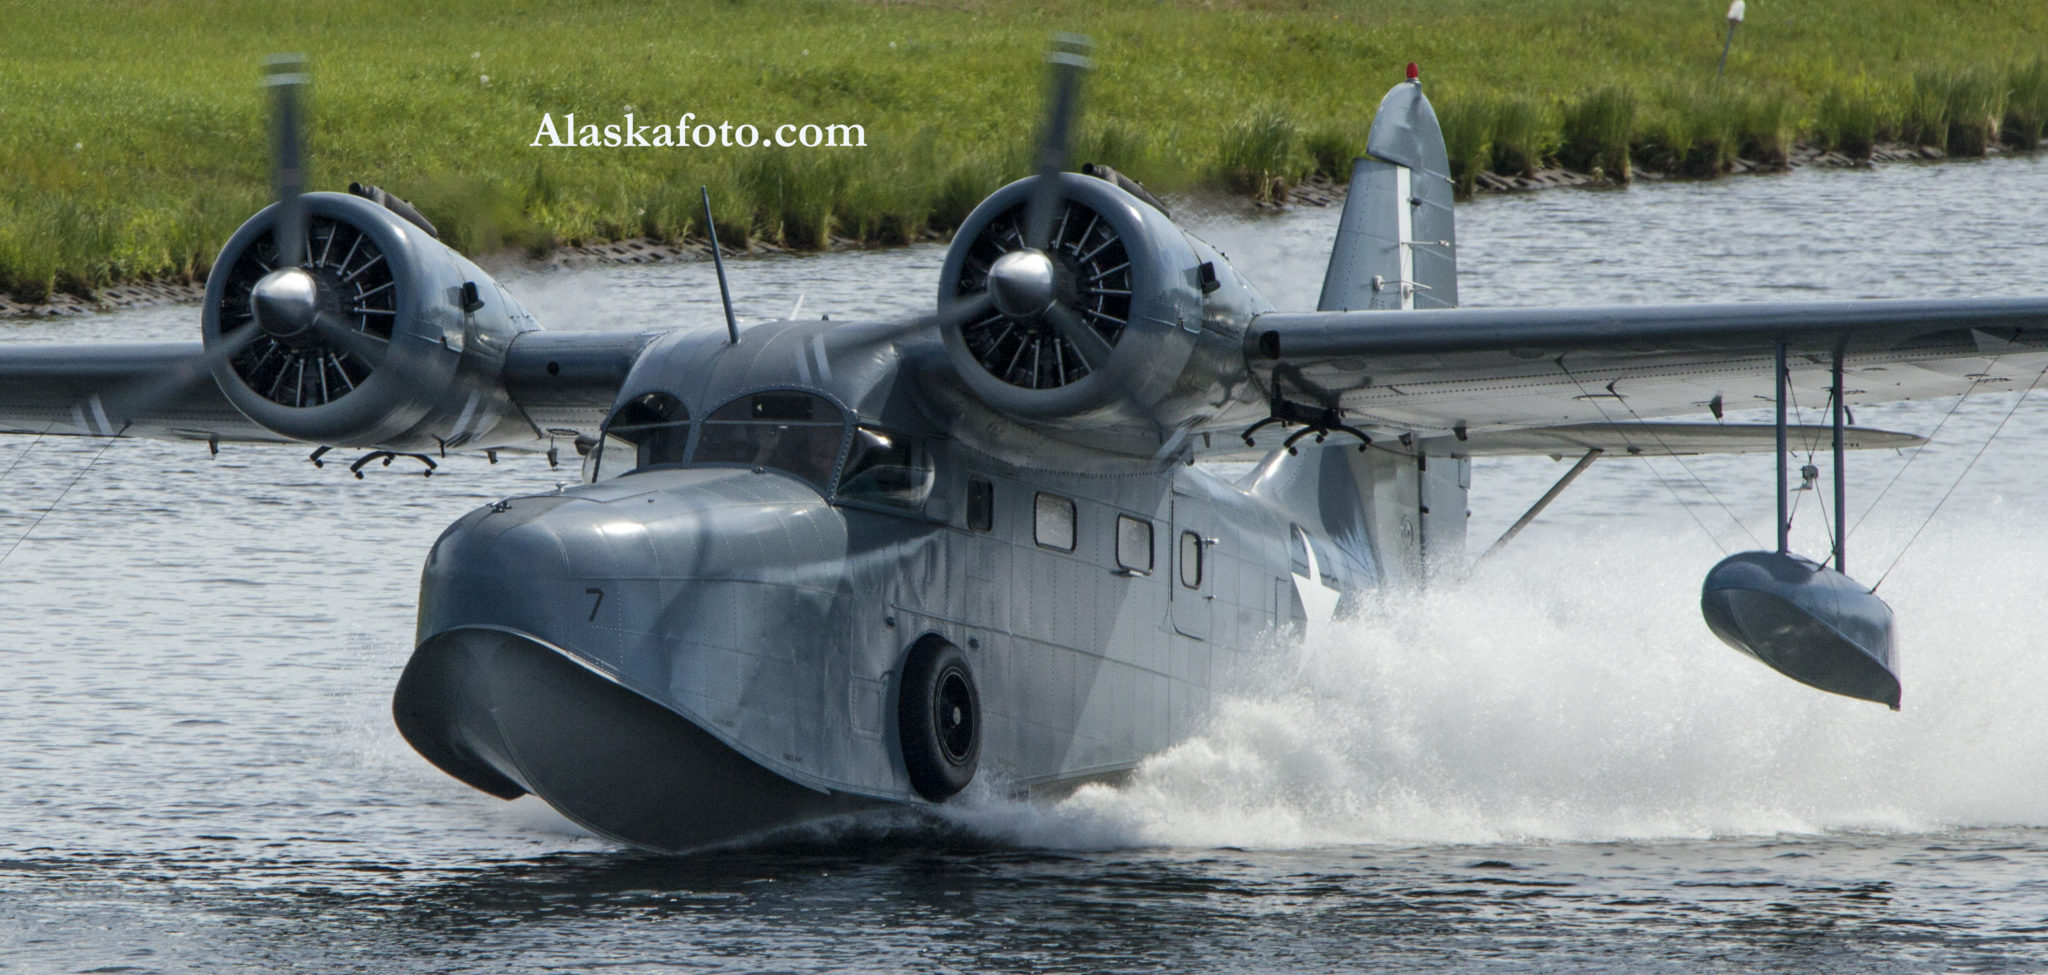 Amphibious aircraft landing on water